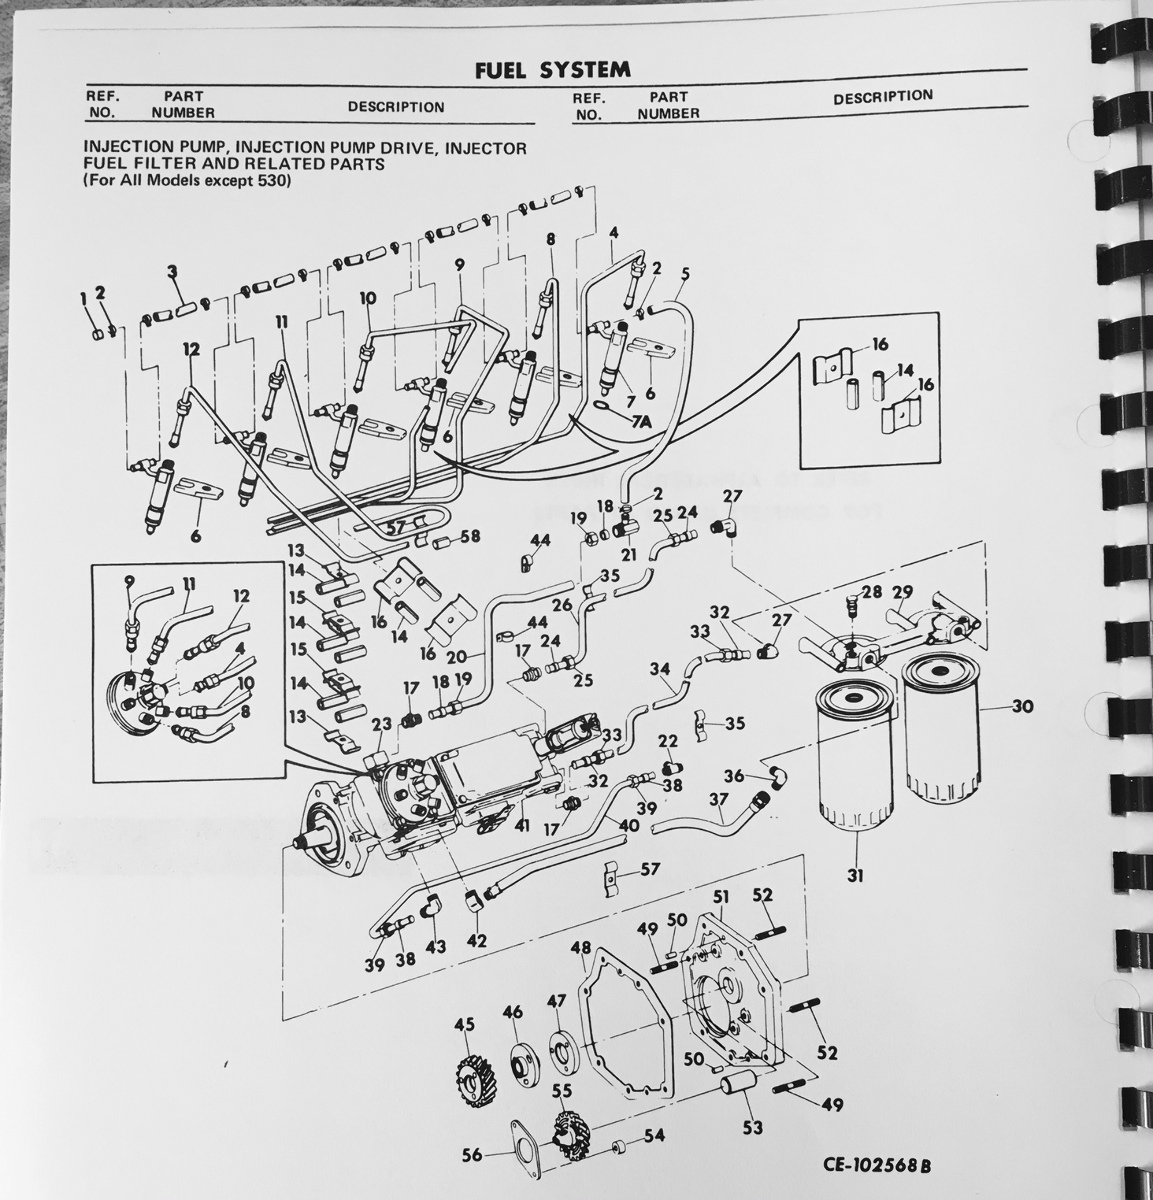 hight resolution of international dt466 parts diagram 33 wiring diagram dt466 exhaust manifold 2005 dt466 engine diagram